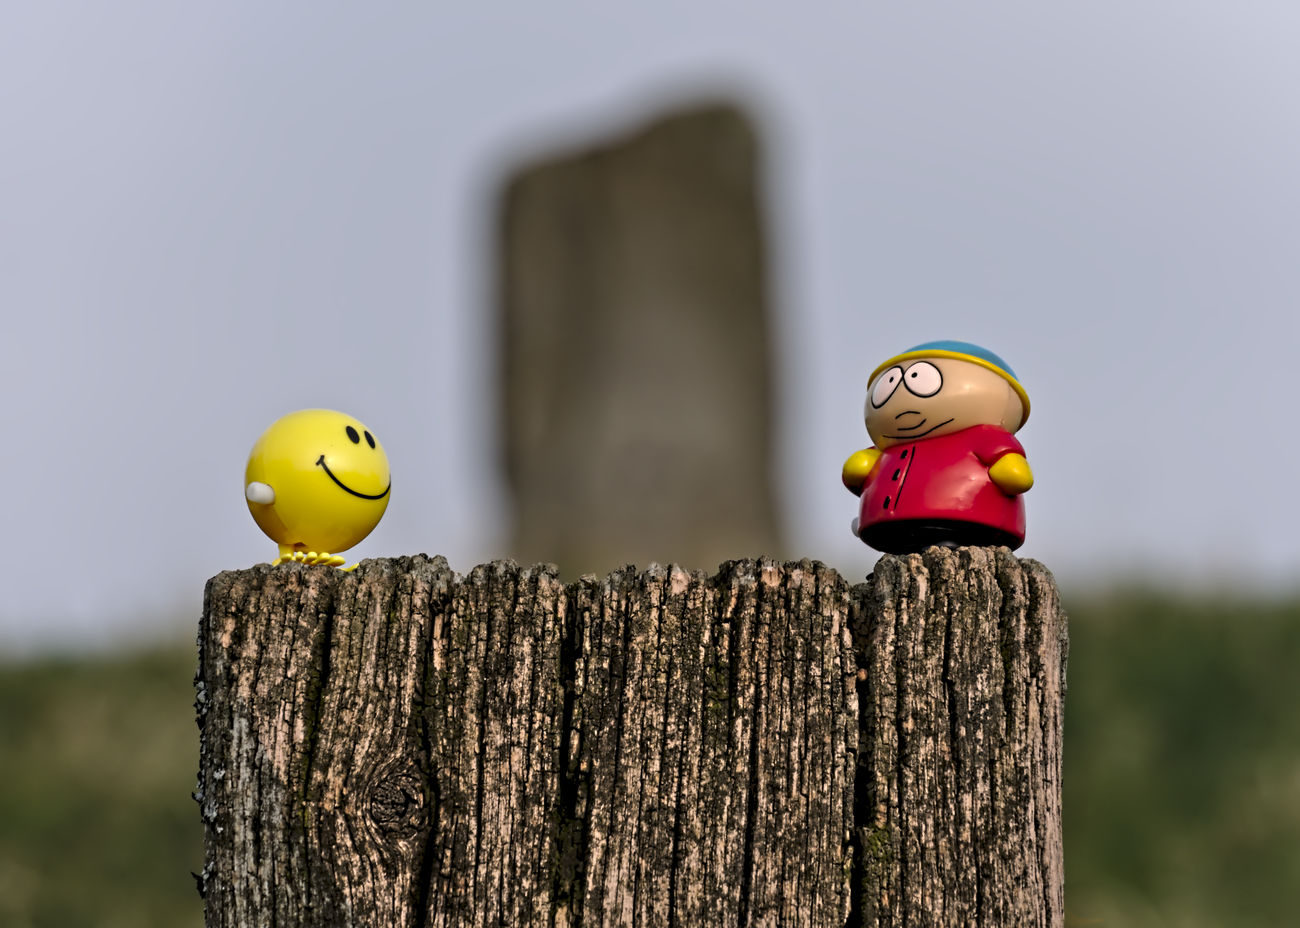 Tomb Adventure Barrow Best Friends Blue Sky Celtic Heritage Celtic Monument Close-up Day Eric Cartman Focus On Foreground Hochdorf Horizon Over Land Keltic Nikon Outdoors Selective Focus Smily Stone - Object Tombstone Toy Toy Adventures Toy Story Wood - Material Wooden Post Wooden Texture Yellow The Secret Spaces